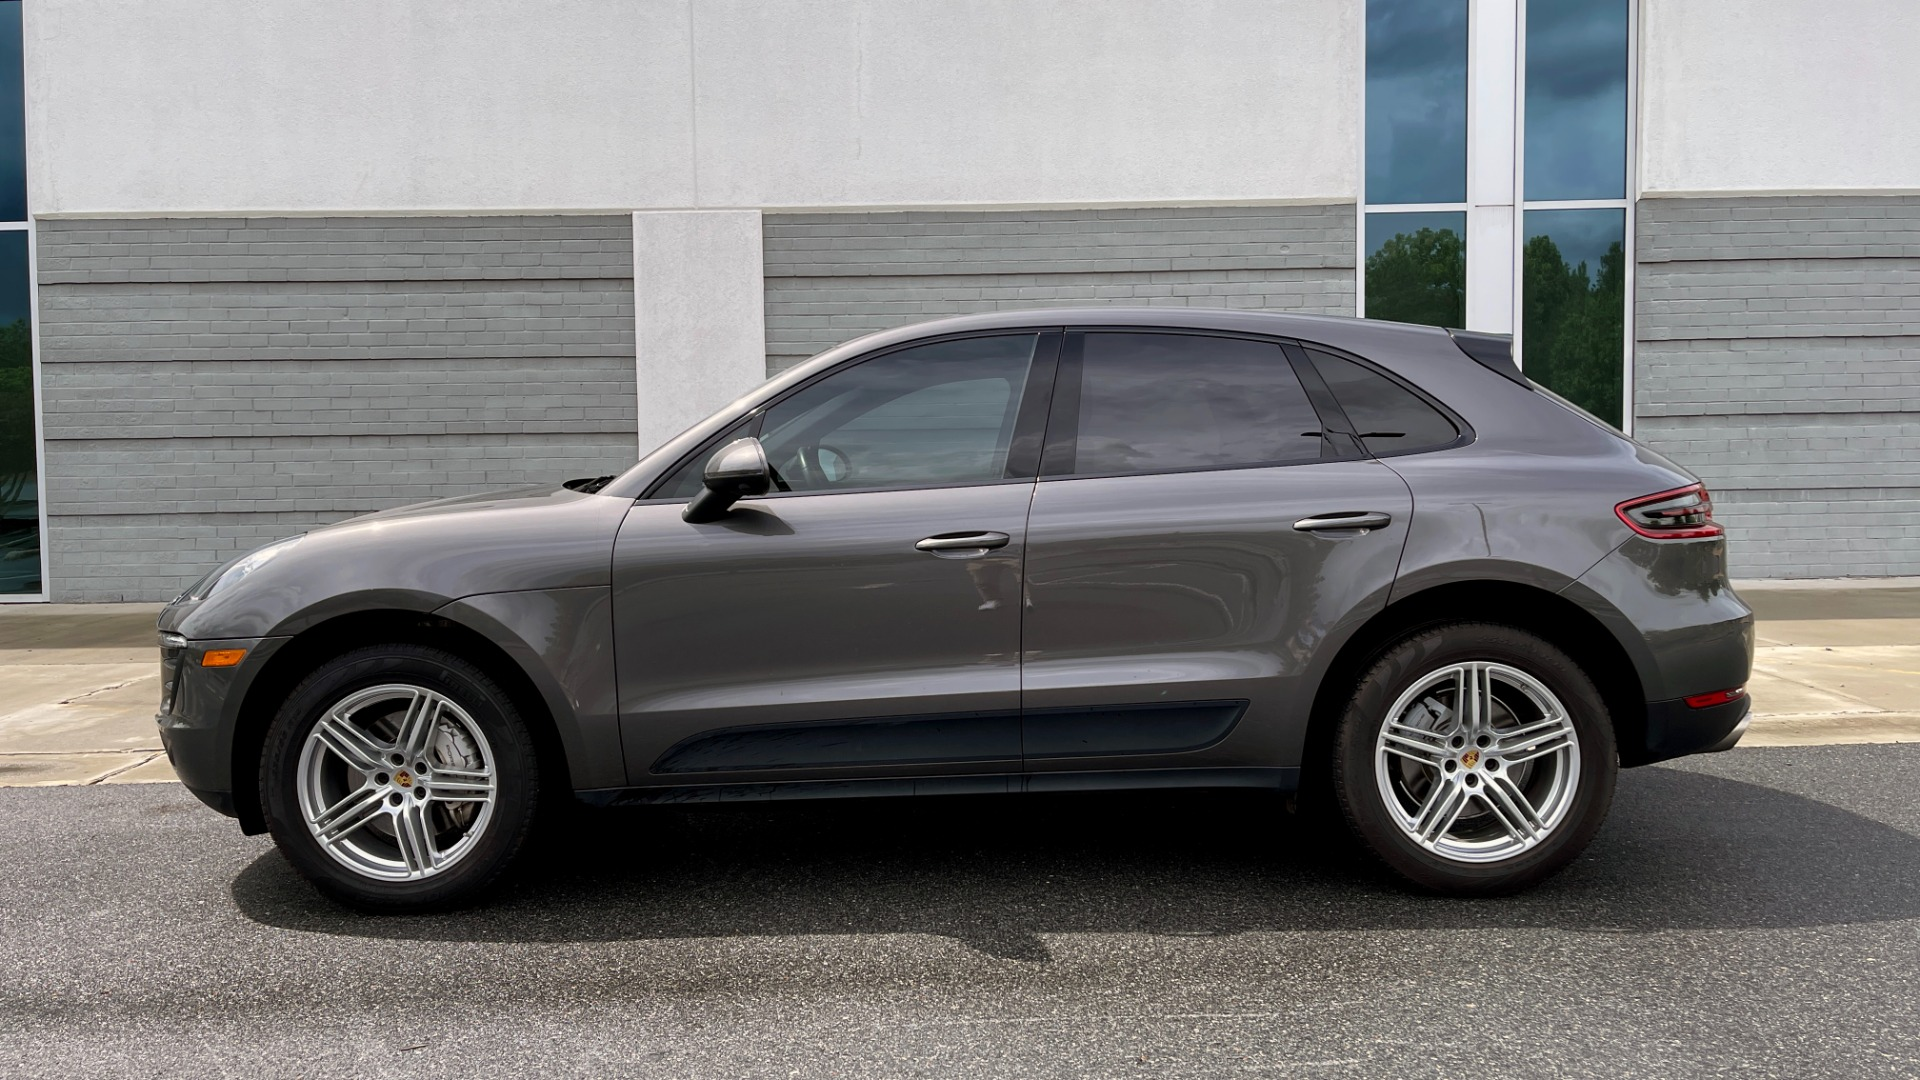 Used 2016 Porsche MACAN S PREMIUM PLUS / AWD / NAV / BOSE / SUNROOF / LCA / PARK ASST / INFOTAINMEN for sale $45,256 at Formula Imports in Charlotte NC 28227 3